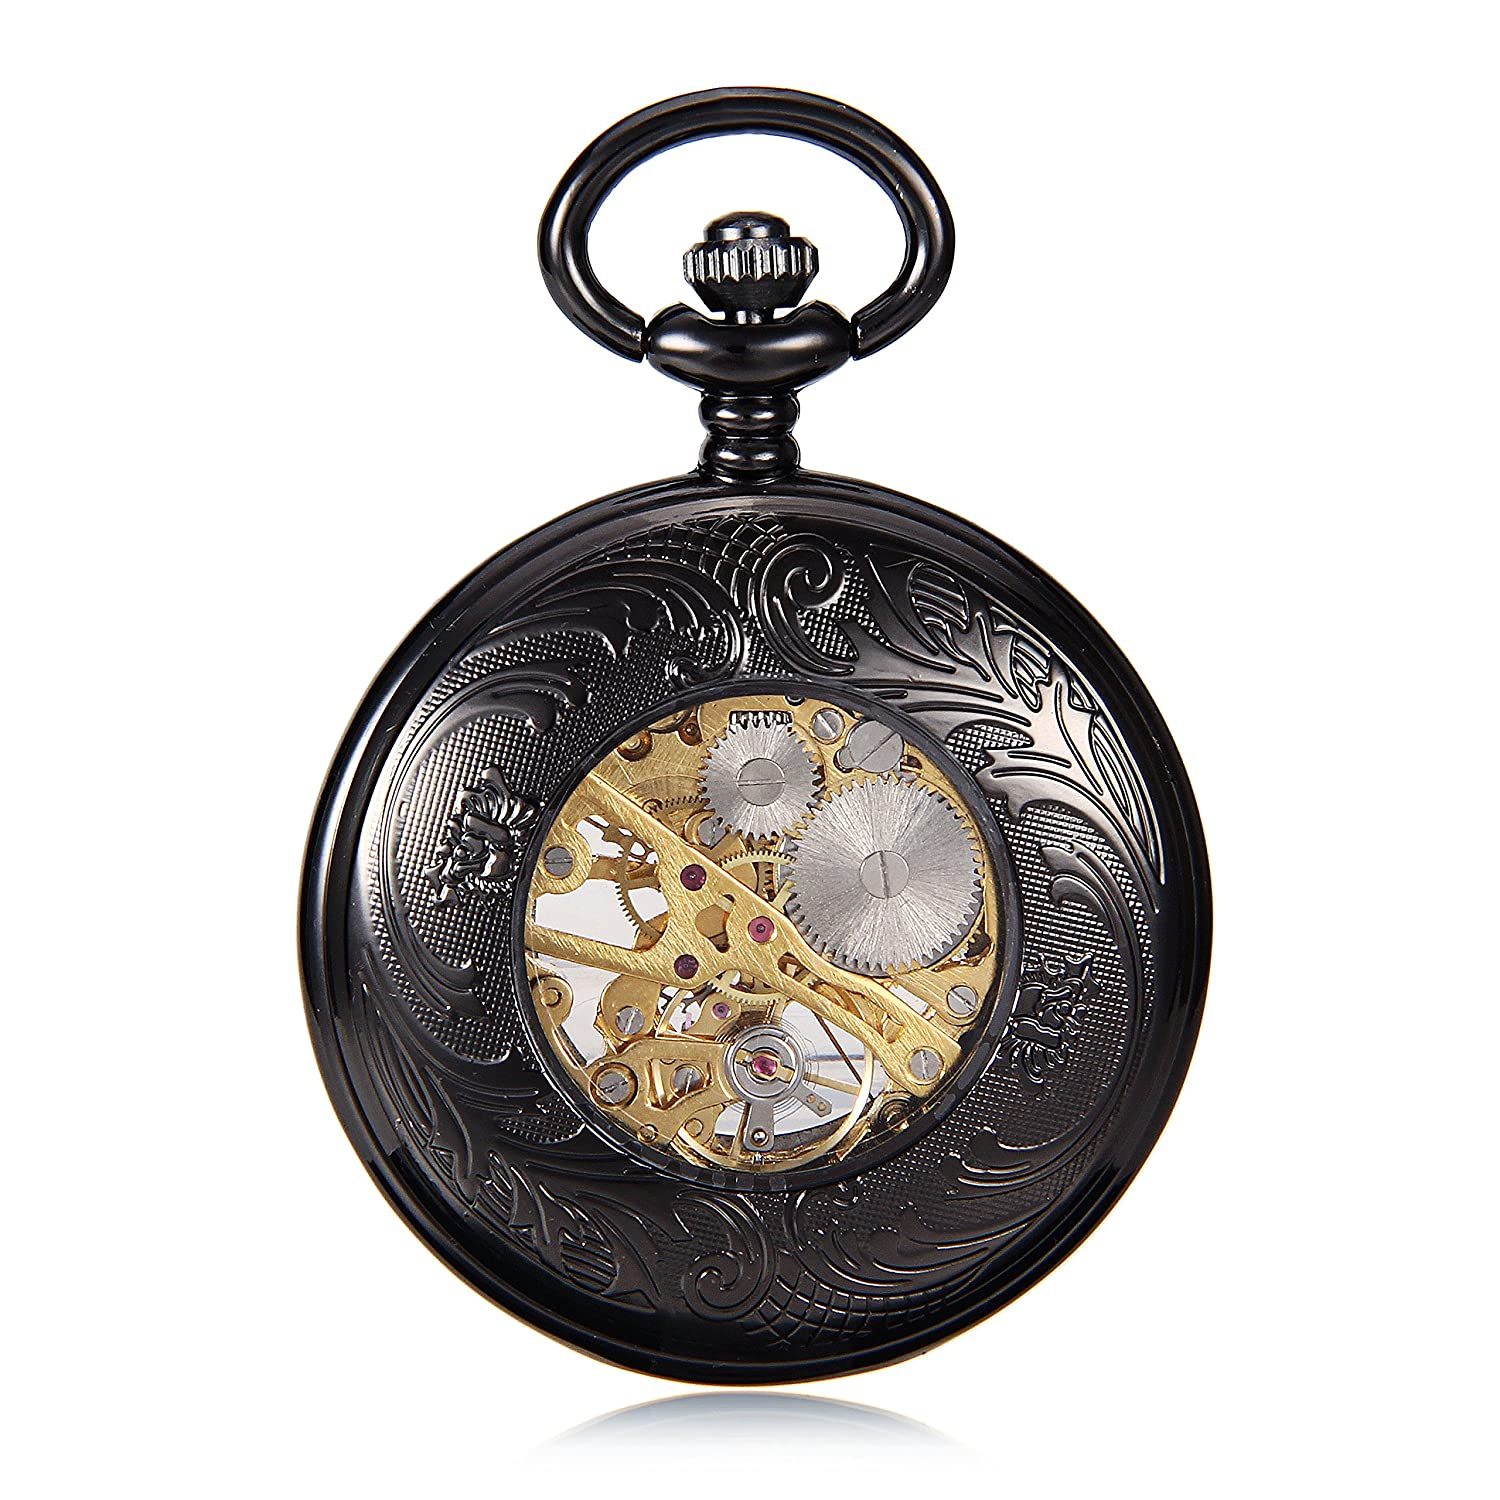 Amazon.com: Classic Elegant Hand Wind Vintage Unique Retro Pendant Classic Mens Mechanical Pocket Watch W/Chain reloj de bolsillo: Watches